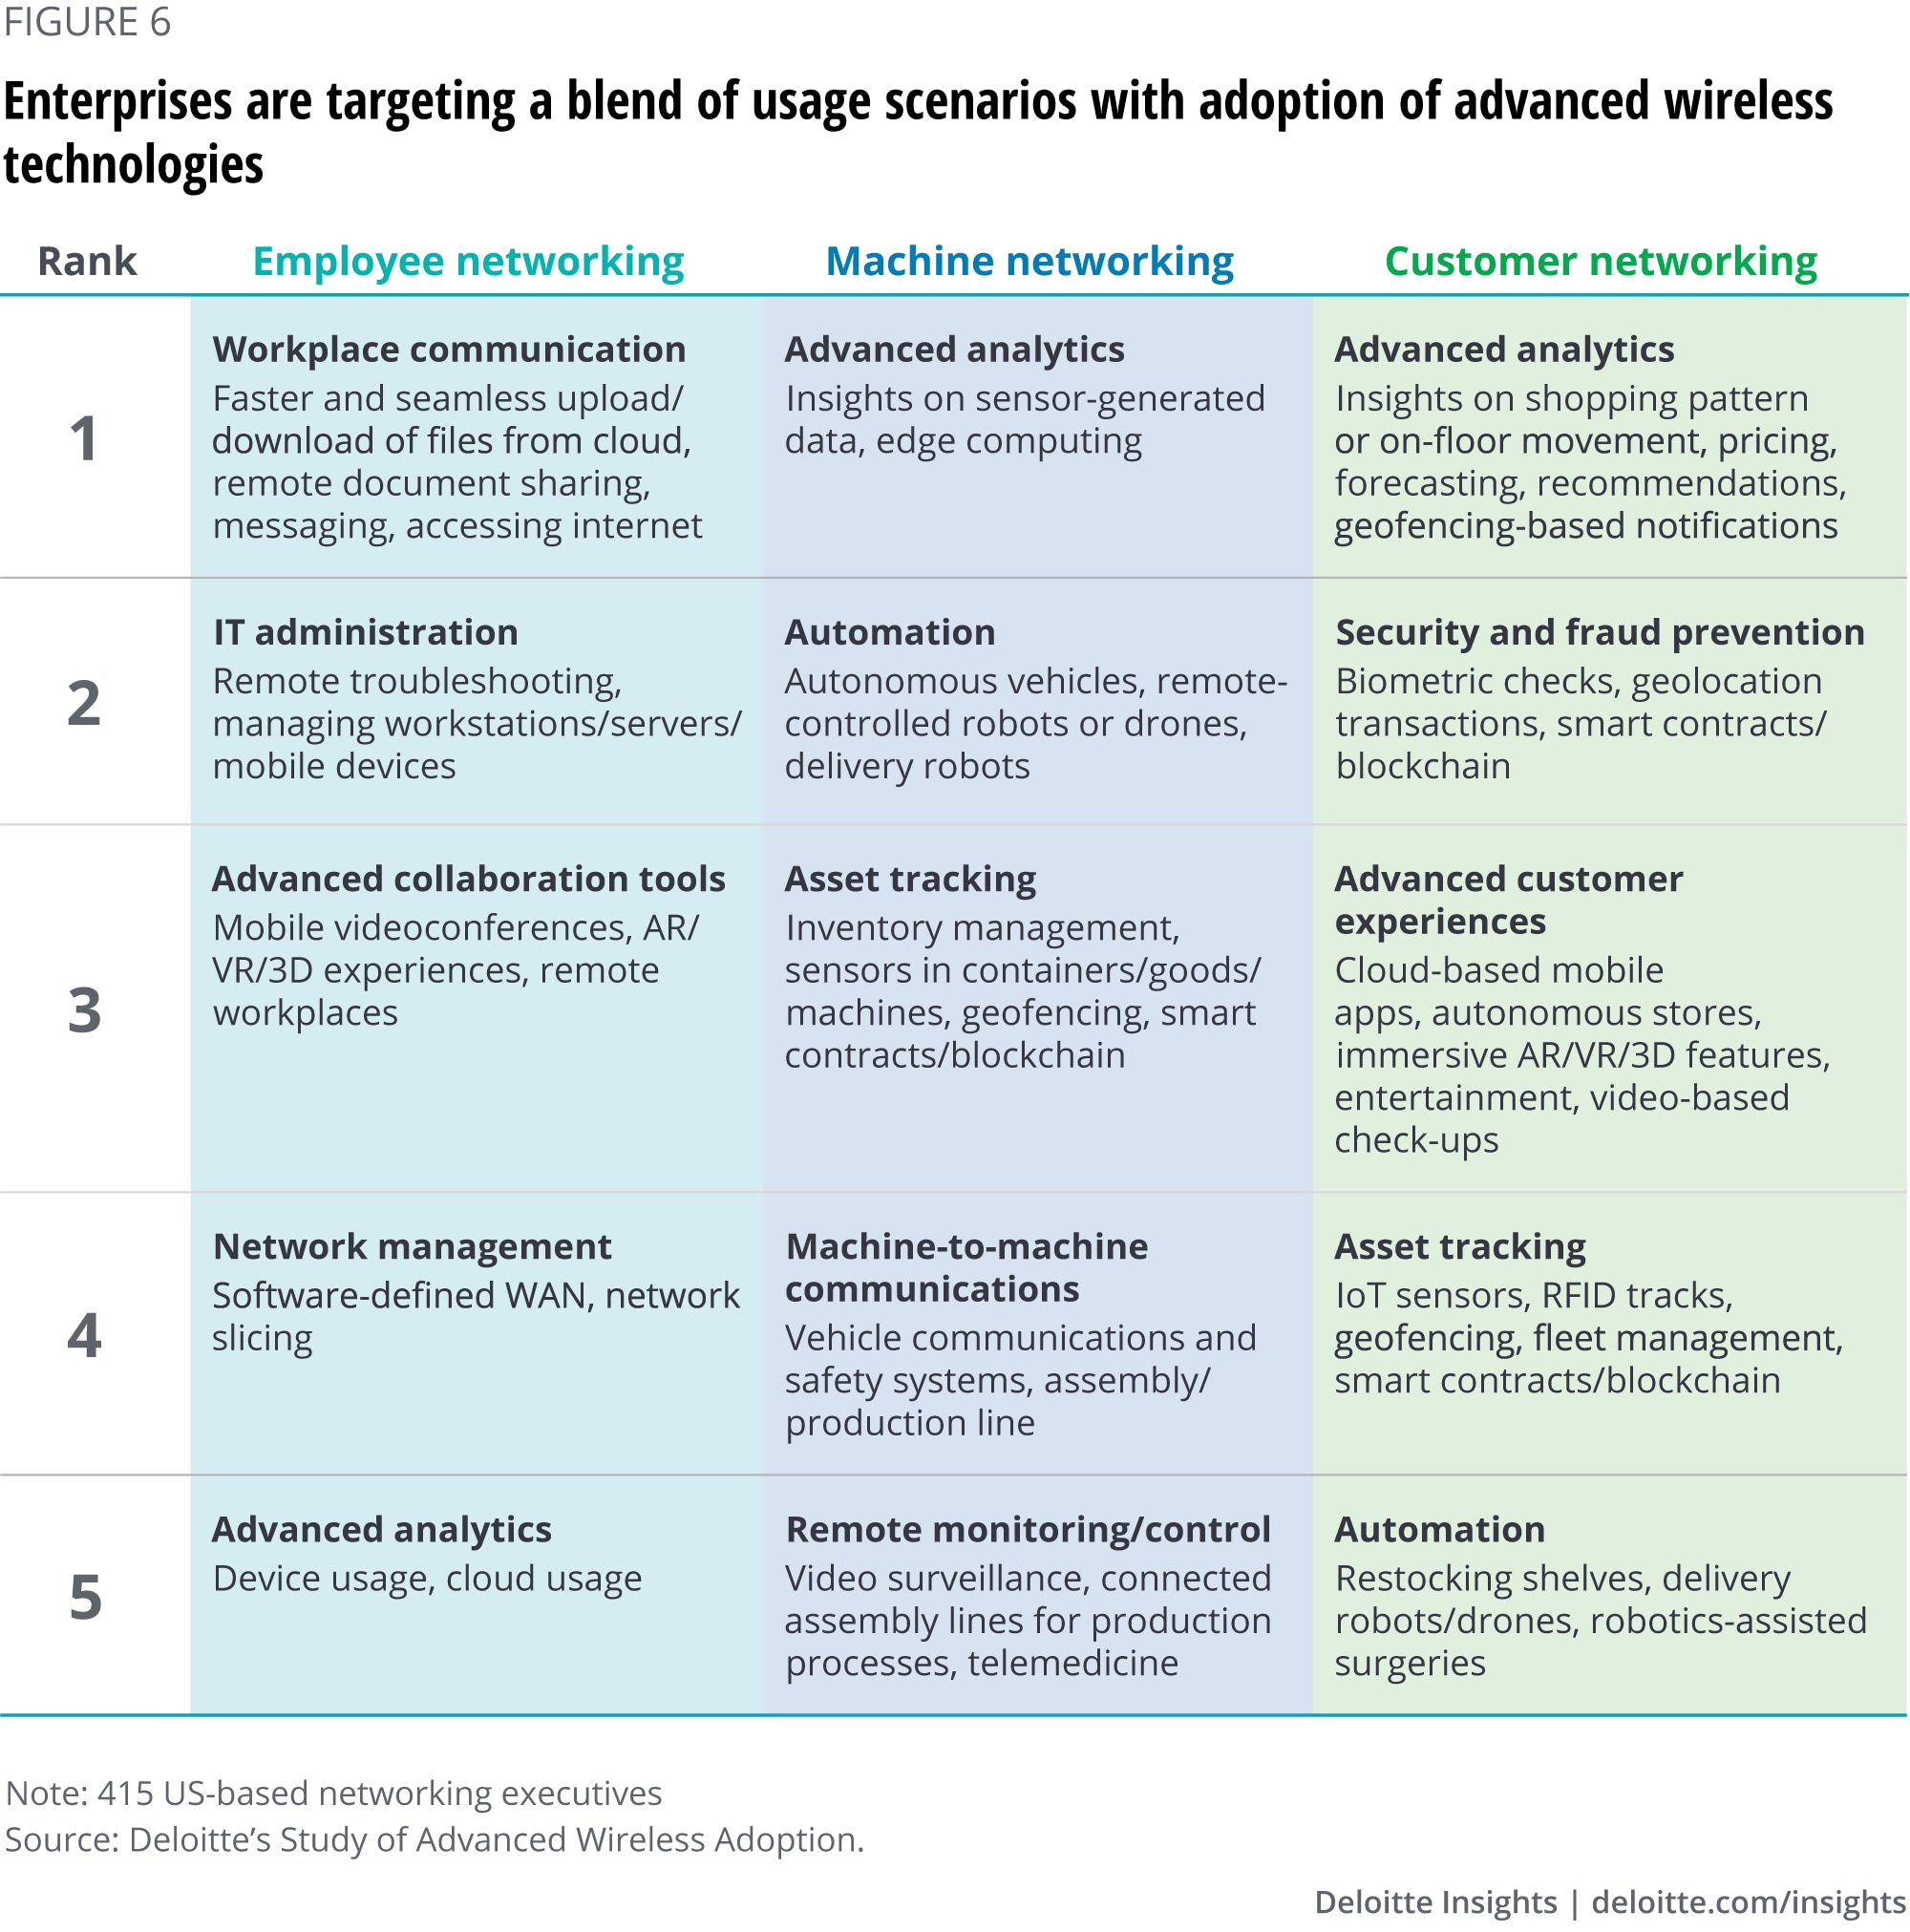 Enterprises are targeting a blend of usage scenarios with adoption of advanced wireless technologies